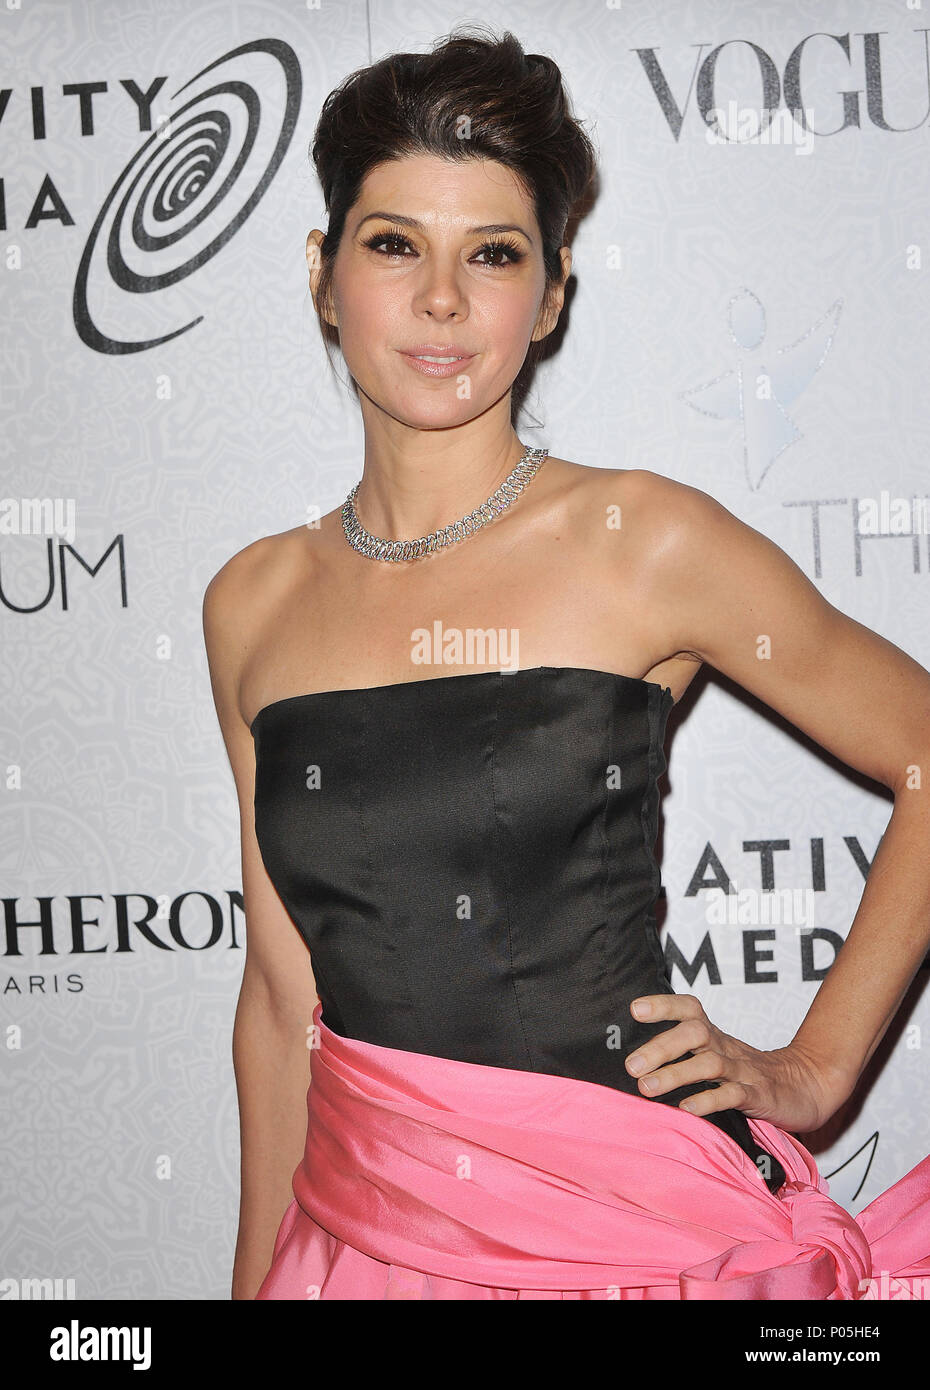 Marisa Tomei _31  - The Art of Elysium Gala at the Beverly Hilton In Los Angeles.Marisa Tomei _31 Red Carpet Event, Vertical, USA, Film Industry, Celebrities,  Photography, Bestof, Arts Culture and Entertainment, Topix Celebrities fashion /  Vertical, Best of, Event in Hollywood Life - California,  Red Carpet and backstage, USA, Film Industry, Celebrities,  movie celebrities, TV celebrities, Music celebrities, Photography, Bestof, Arts Culture and Entertainment,  Topix, vertical, one person,, from the year , 2010, inquiry tsuni@Gamma-USA.com - Three Quarters - Stock Image